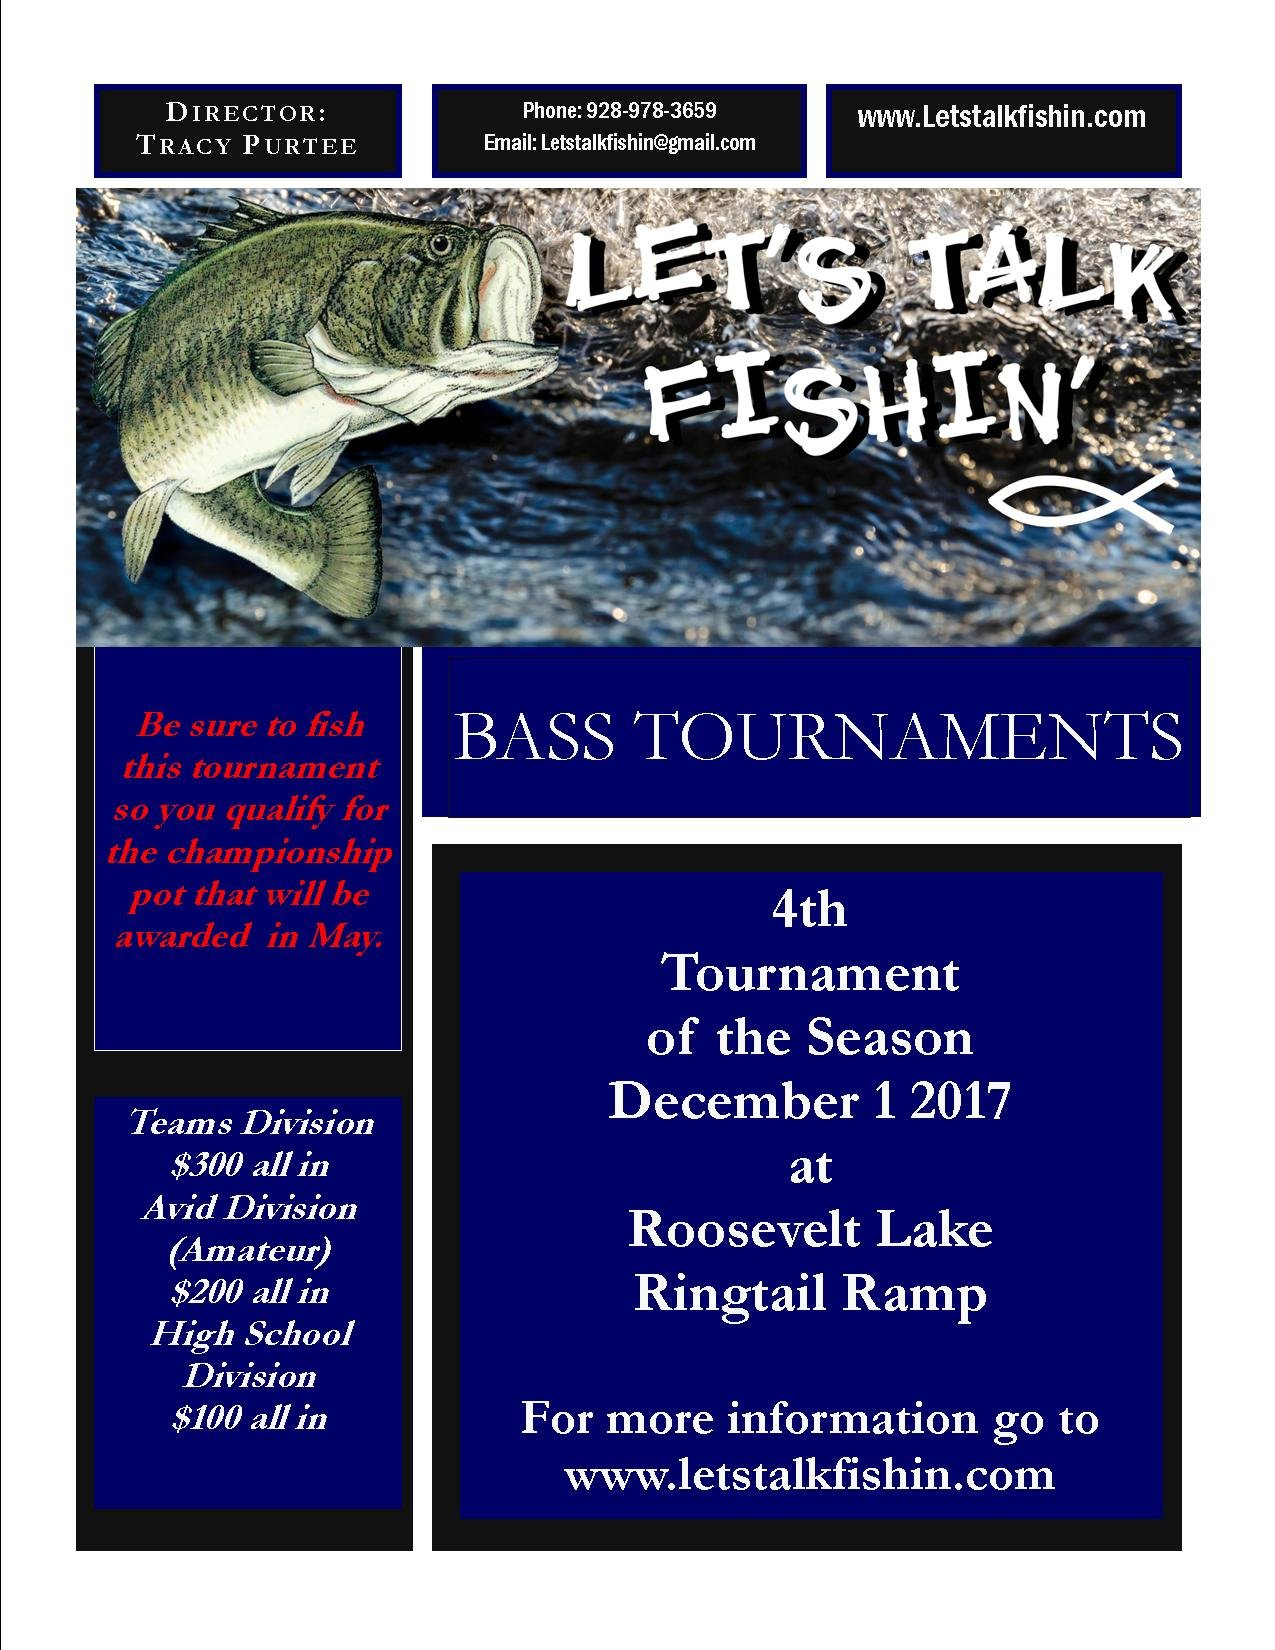 Click image for larger version  Name:4th Tournament.jpg Views:1517 Size:285.4 KB ID:96770